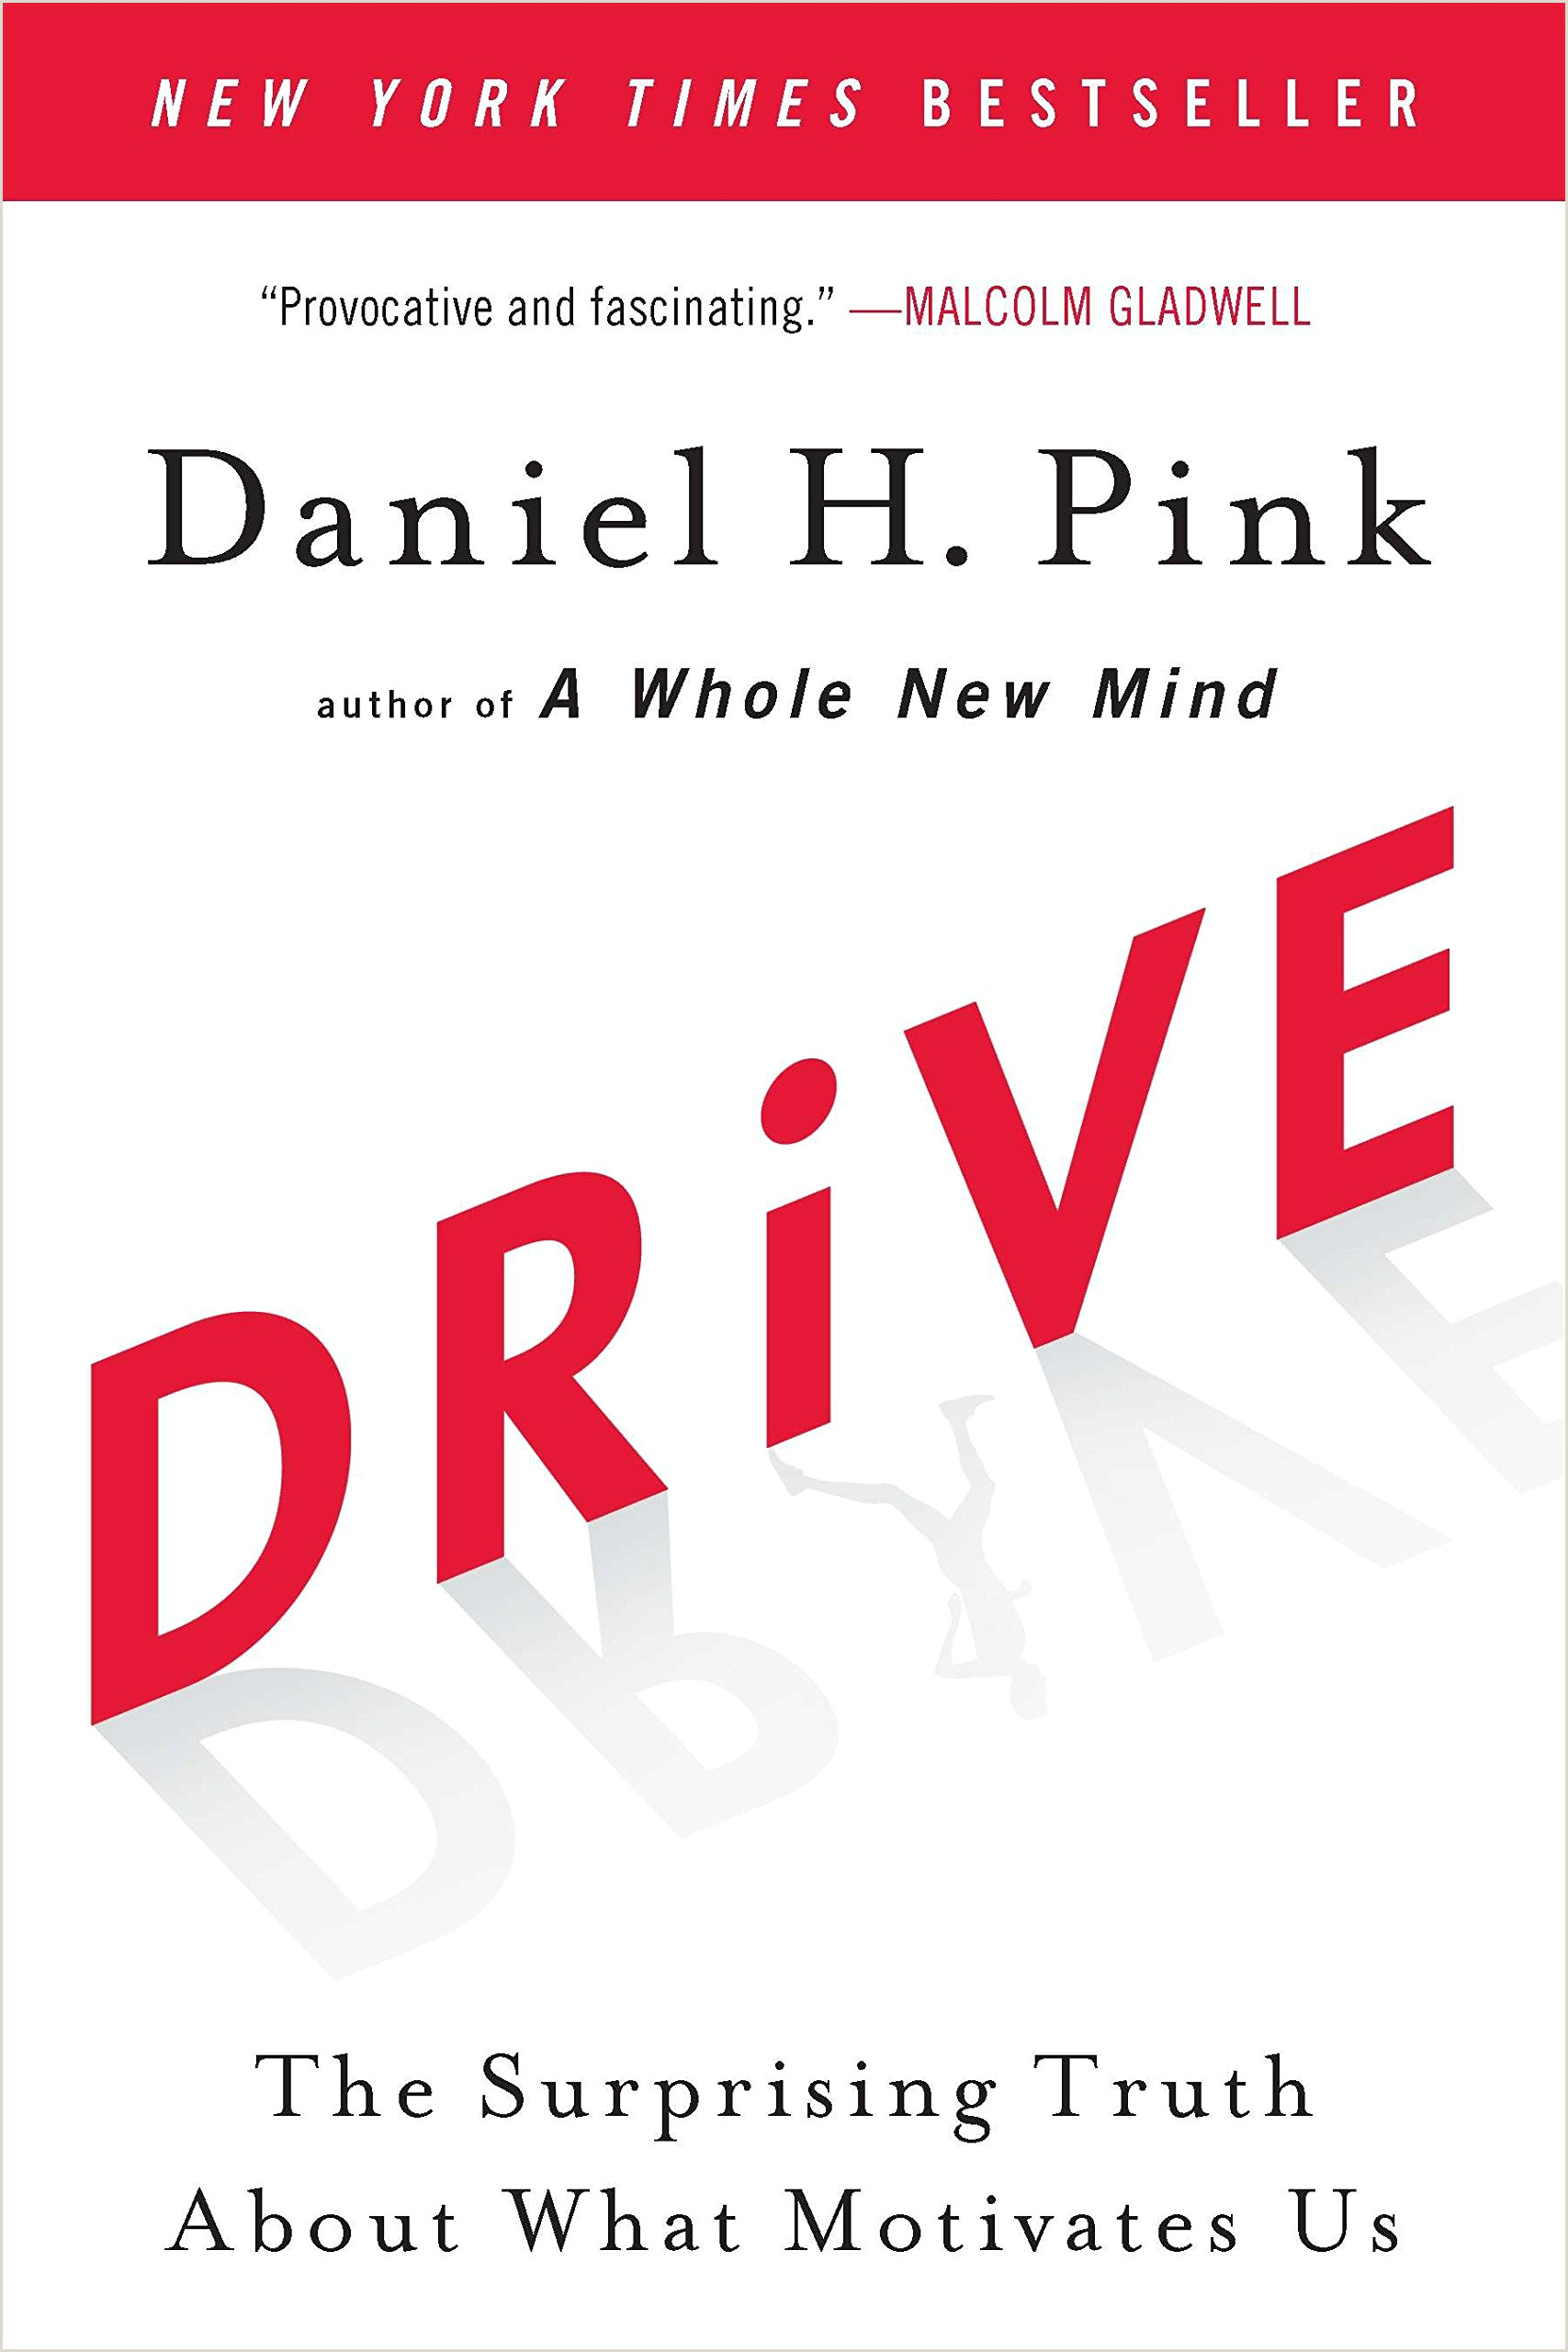 Free Pull Up Samples Usa Drive The Surprising Truth About What Motivates Us Pink